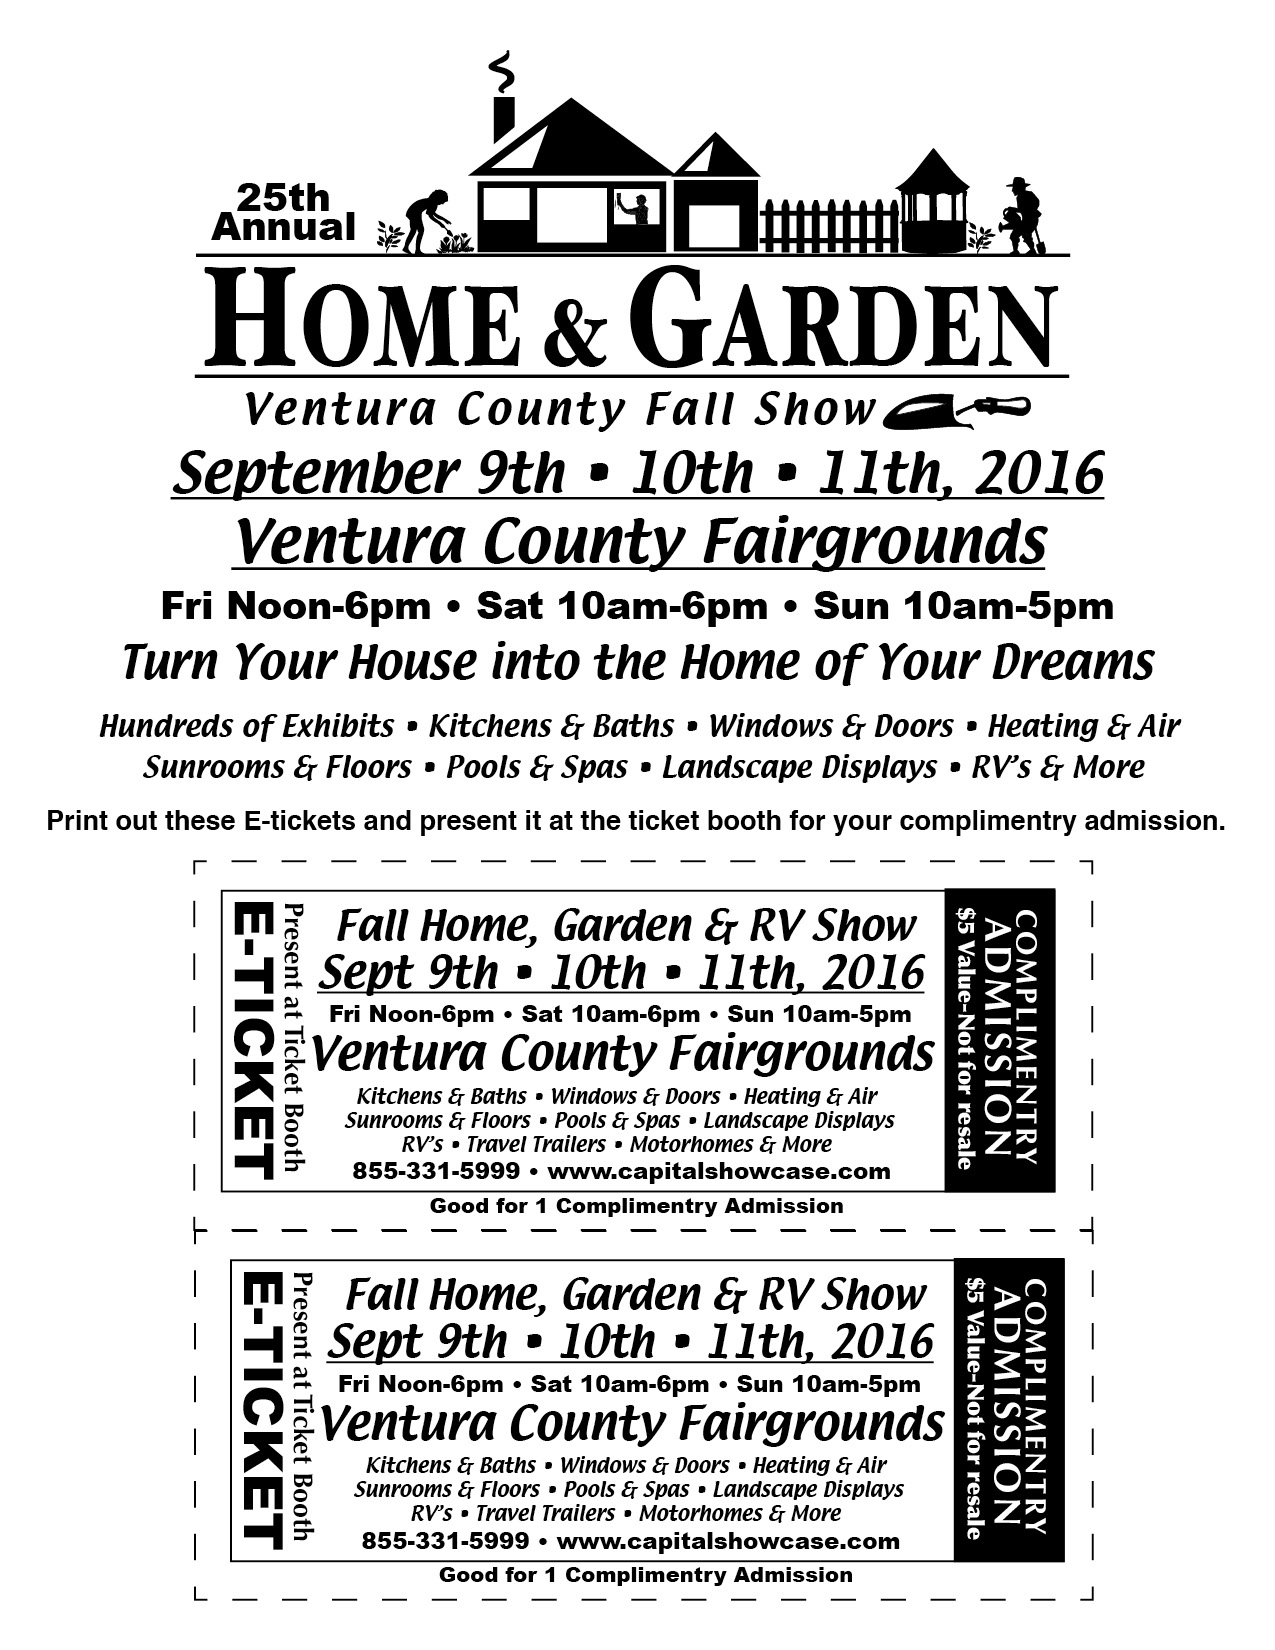 Come Out And See Us At The Home And Garden Show At The Ventura Fair Grounds!